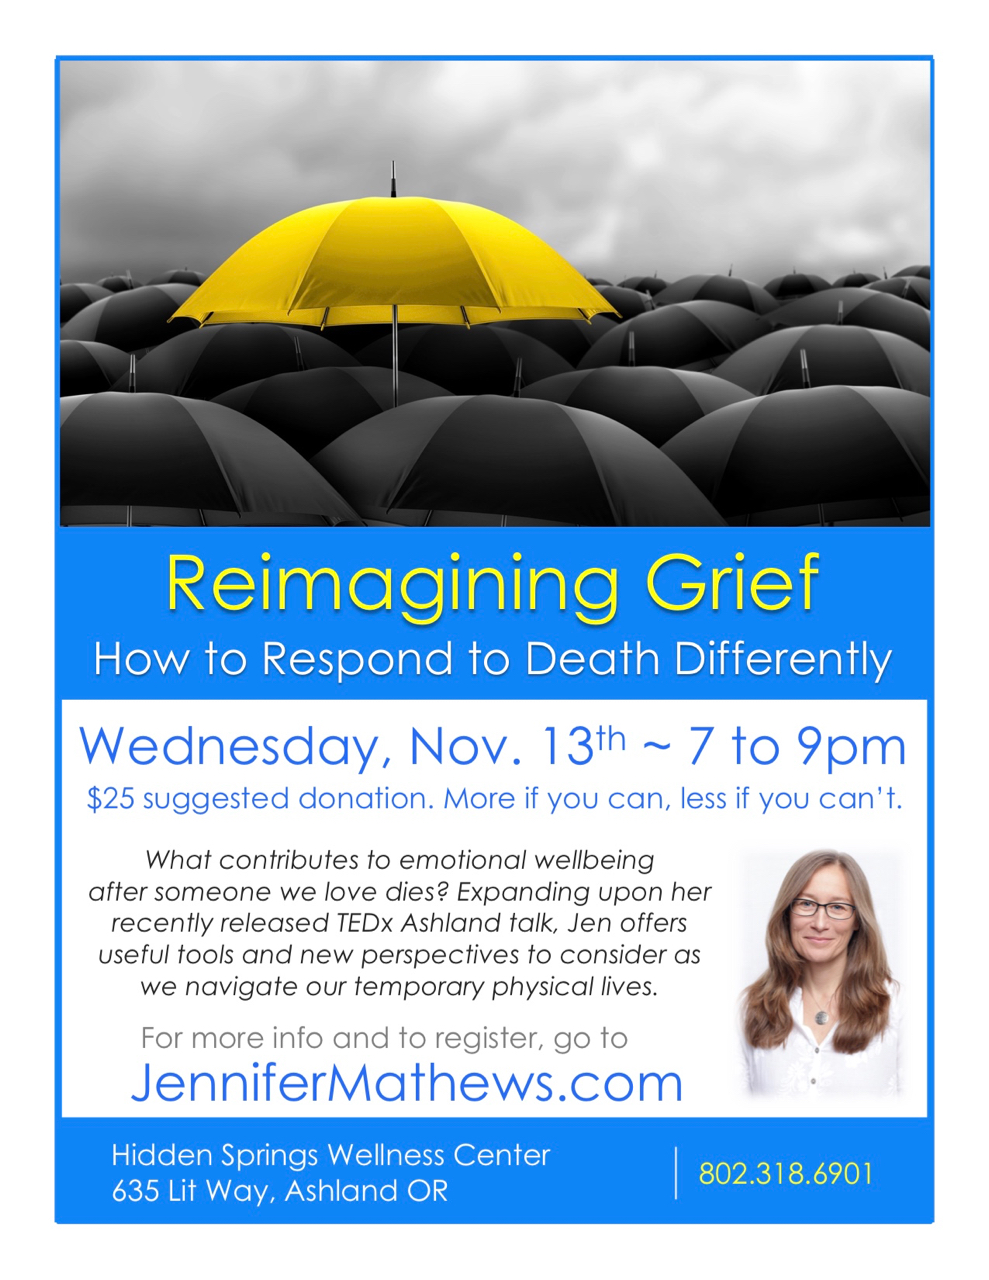 Reimagining Grief Ashland Nov 2019